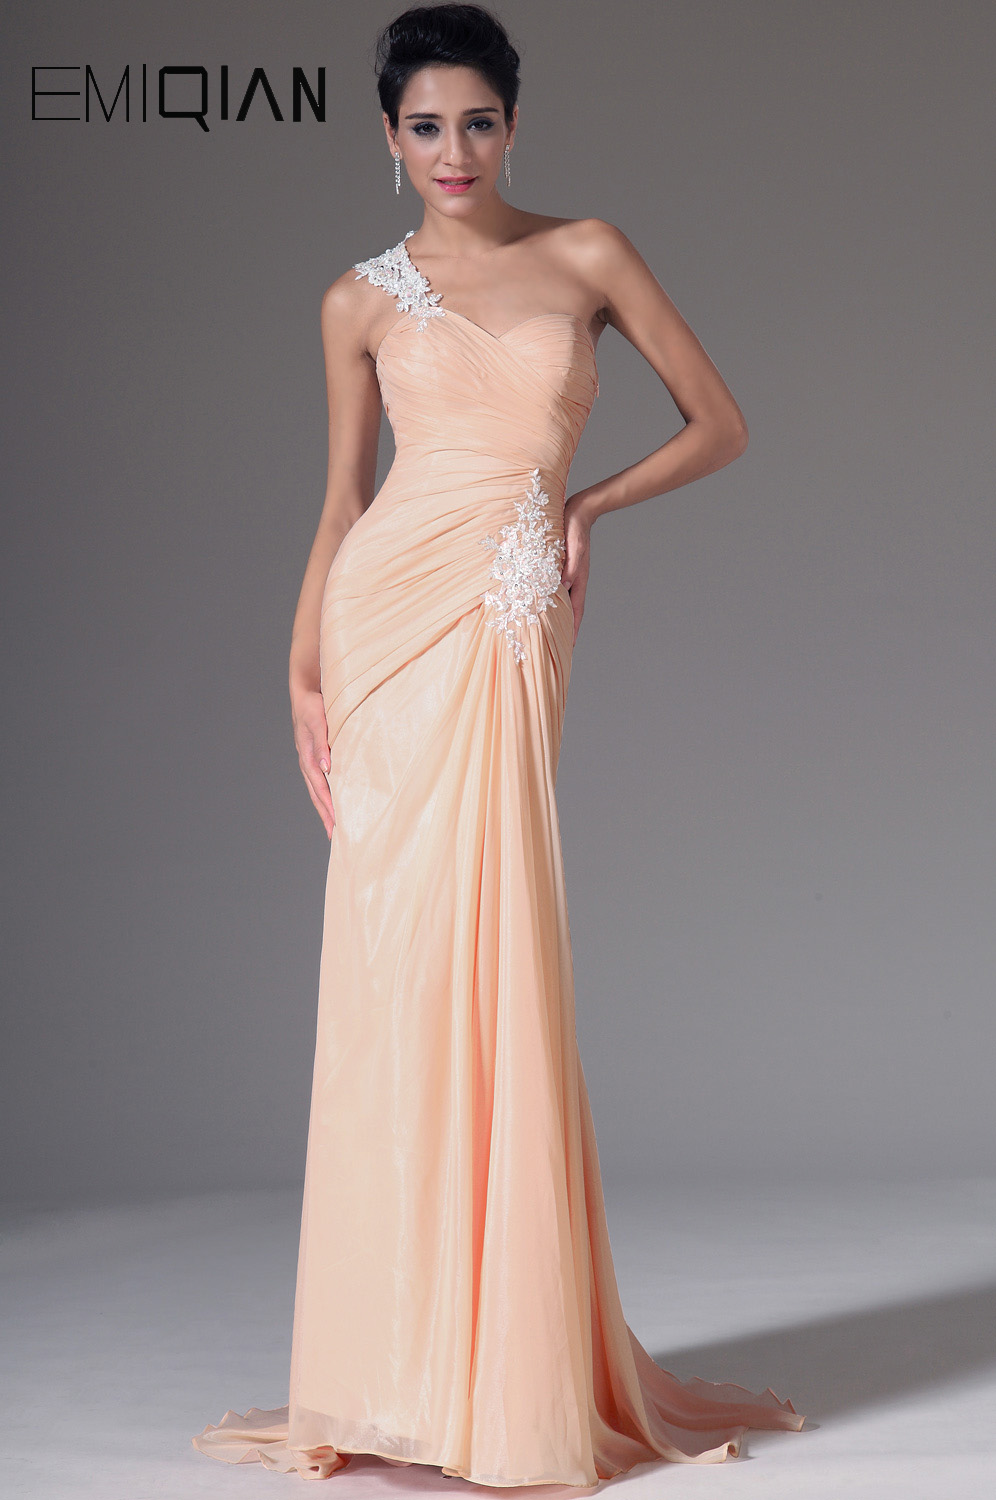 High Quality White Evening Gown Promotion-Shop for High Quality ...